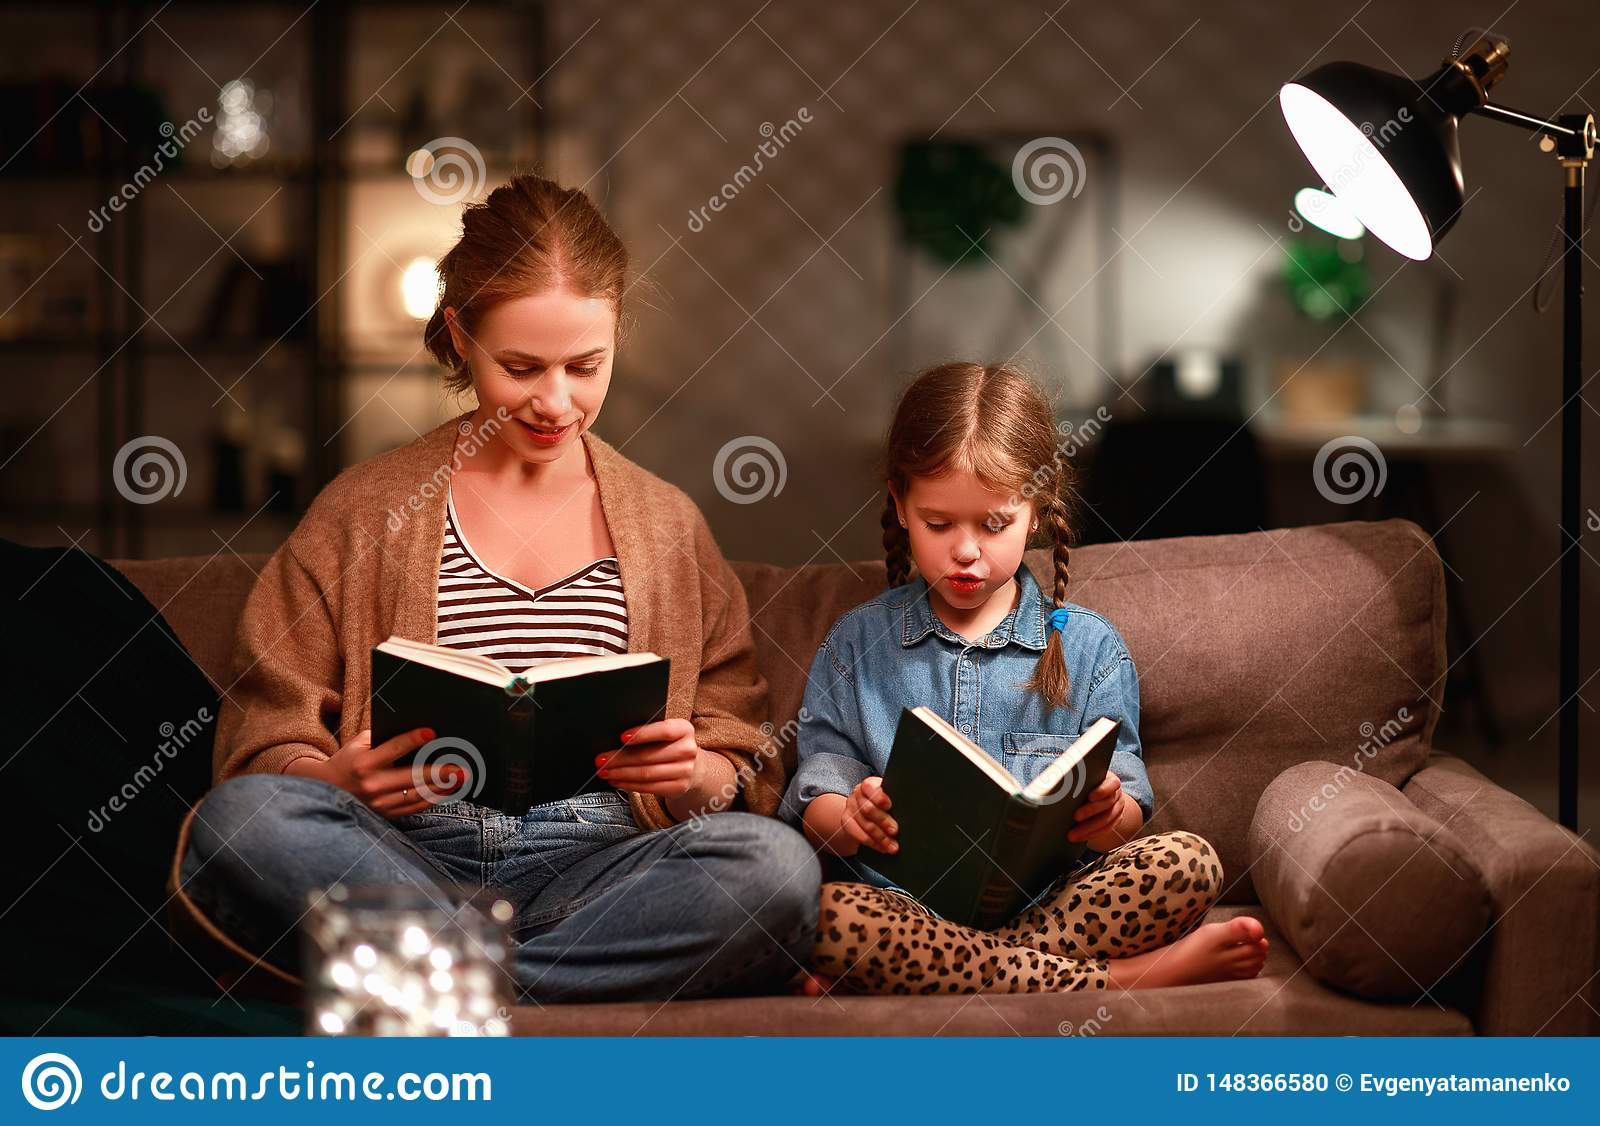 Family before going to bed mother reads to her child daughter book near a lamp in evening